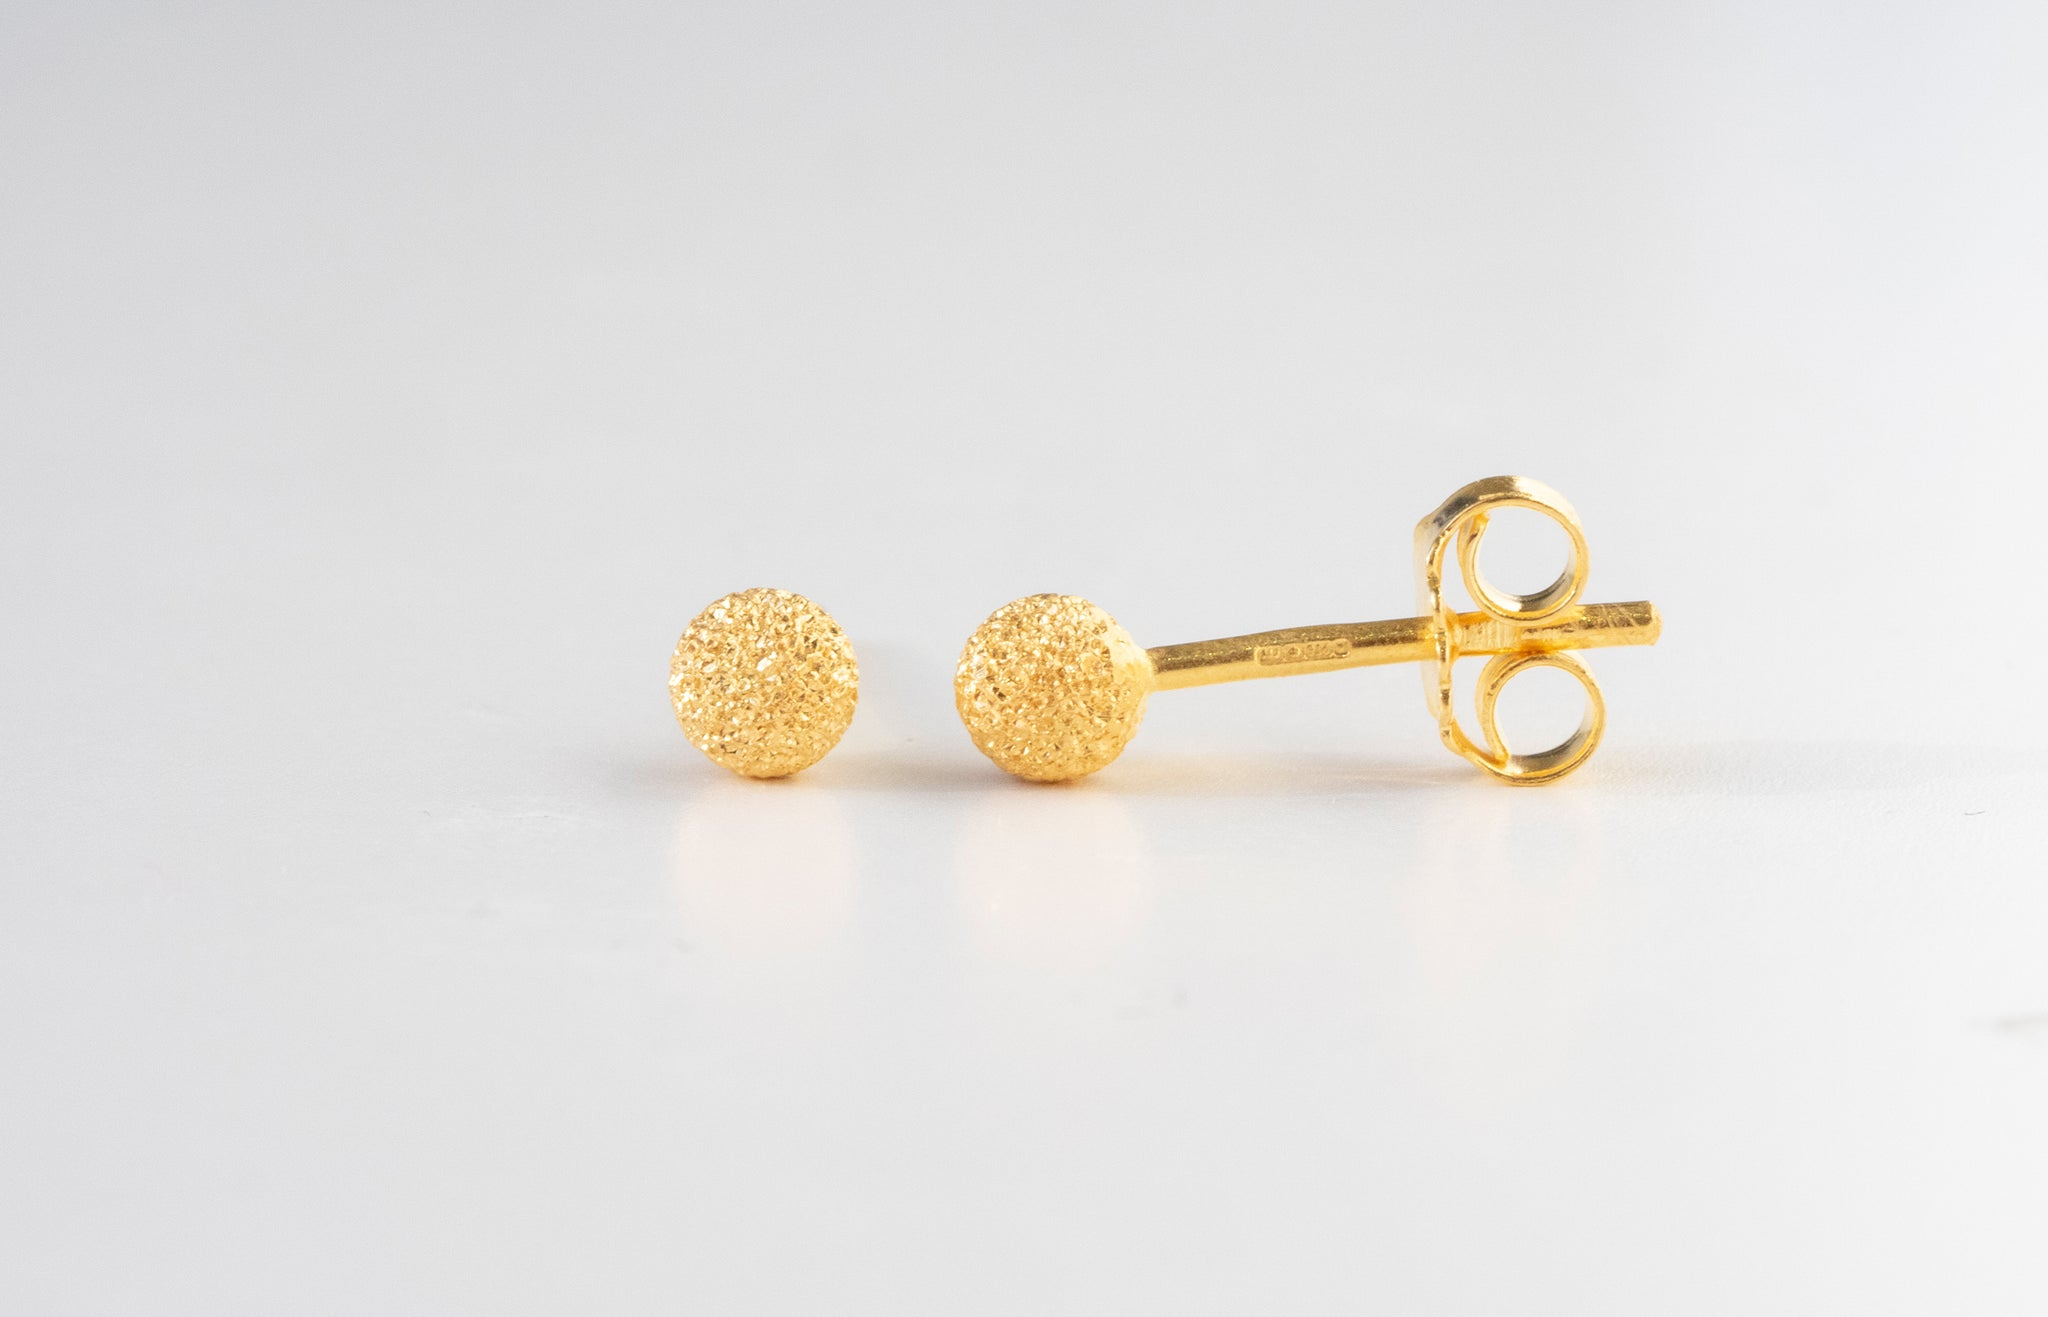 22ct Gold Diamond Cut Stud Earrings with Push Backs (1.2g) E-7759